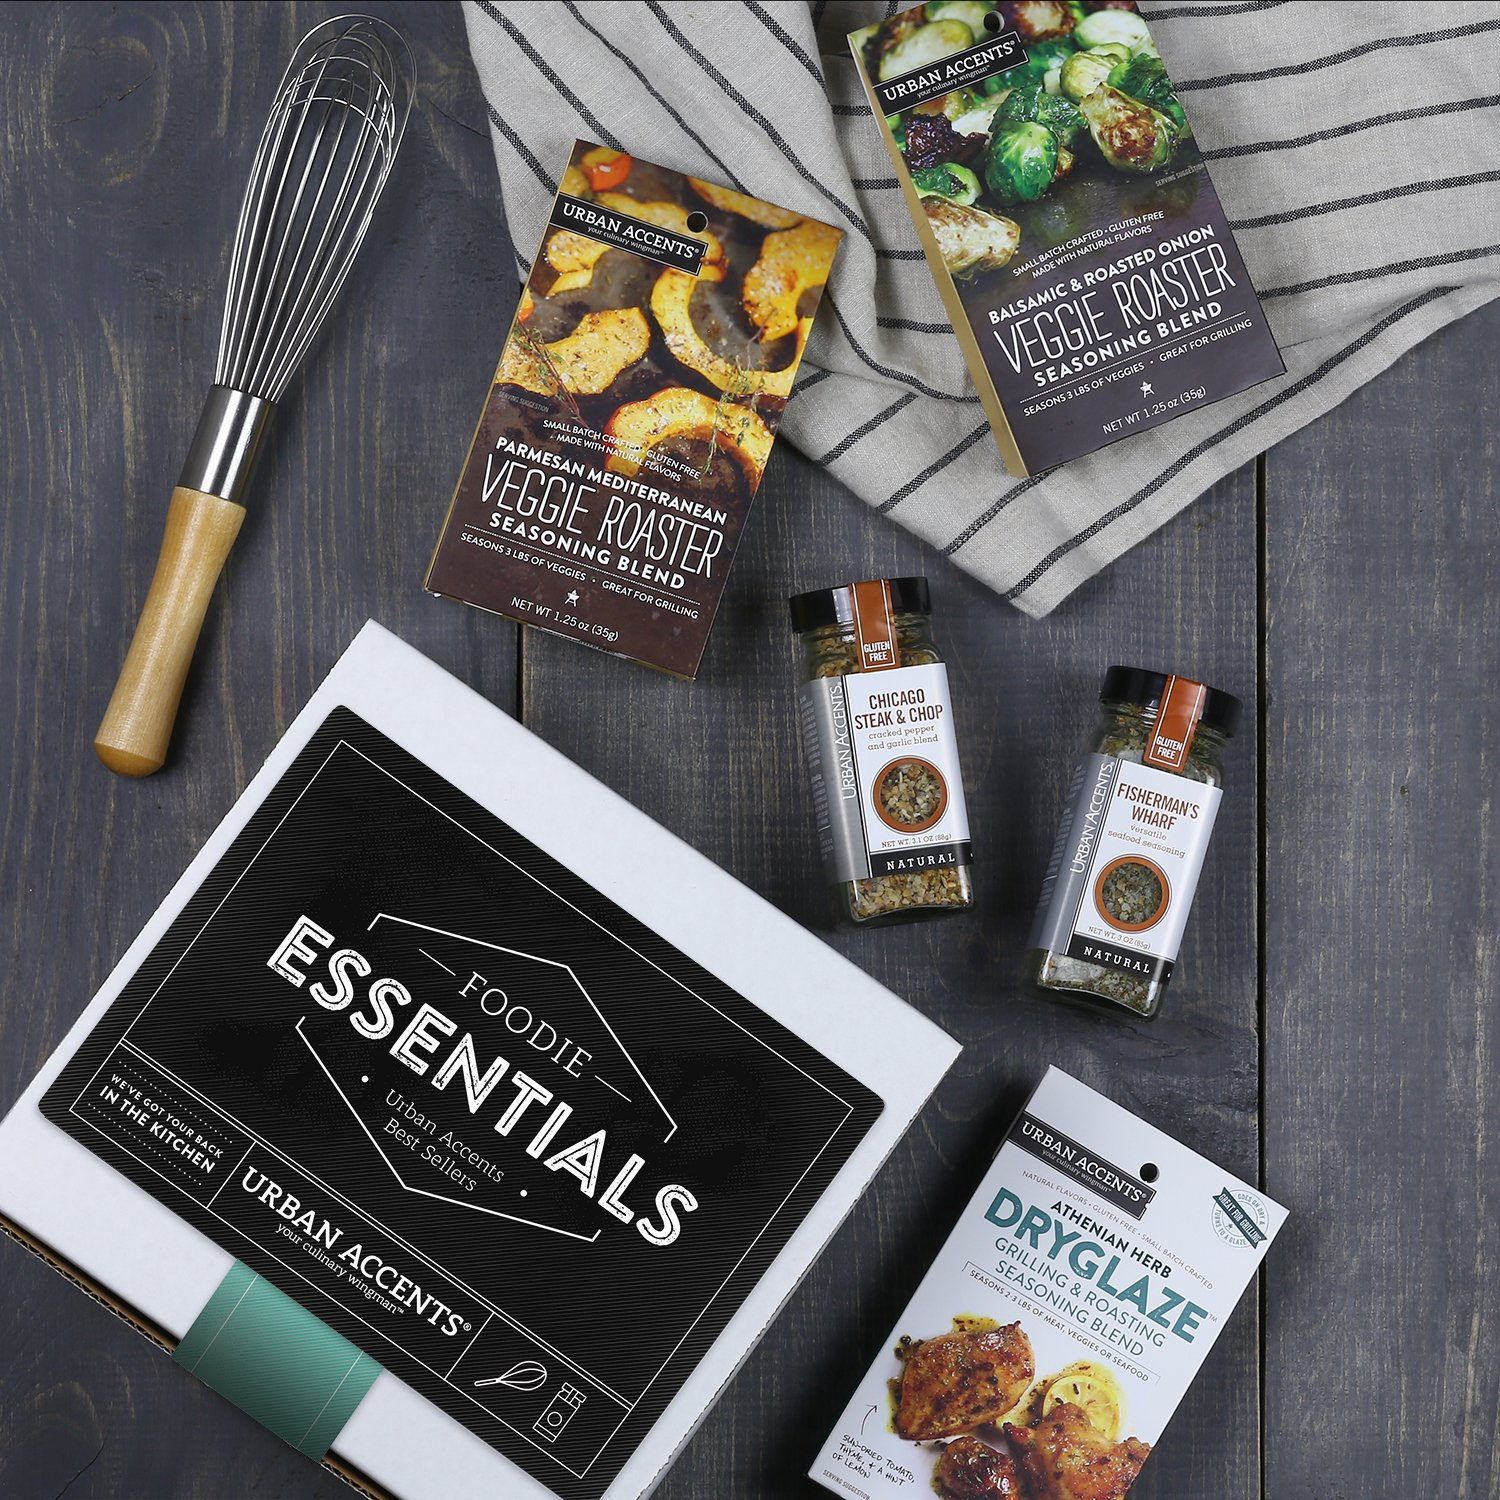 Urban Accents FOODIE ESSENTIALS, Gourmet Gift Set, A Collection of Spices, Veggie Roasters and Dryglazes, Perfect for Weddings, Housewarmings or Any Occasion by Urban Accents (Image #5)